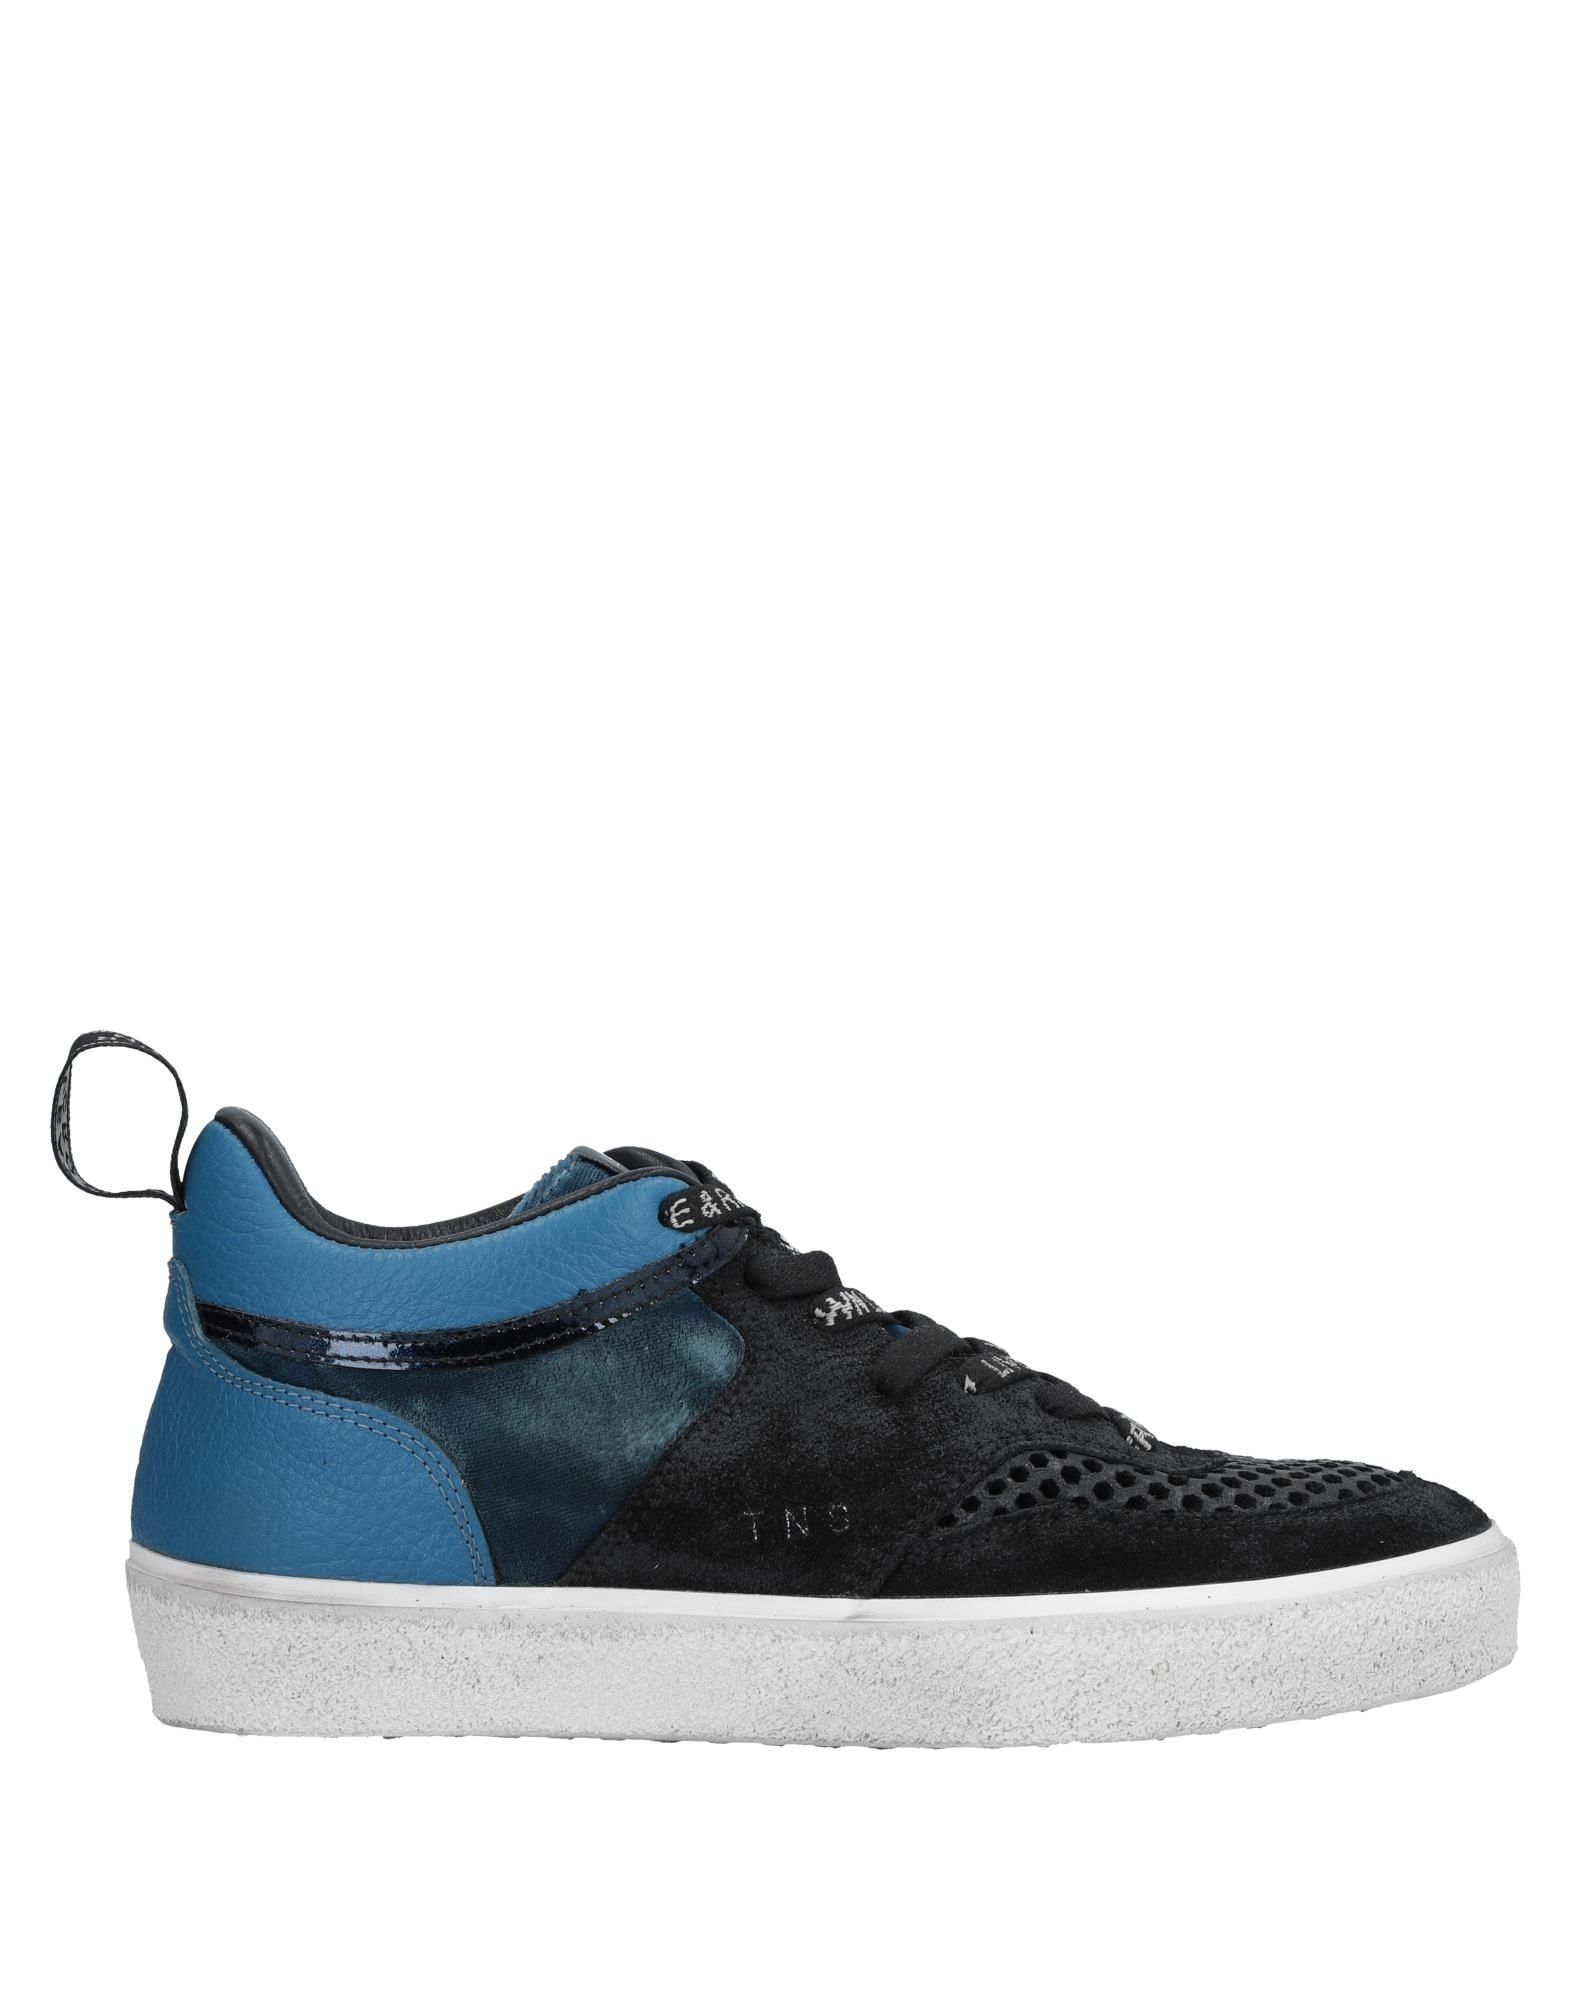 Crown Leather Crown  Sneakers Damen  11526642JD 0e8827